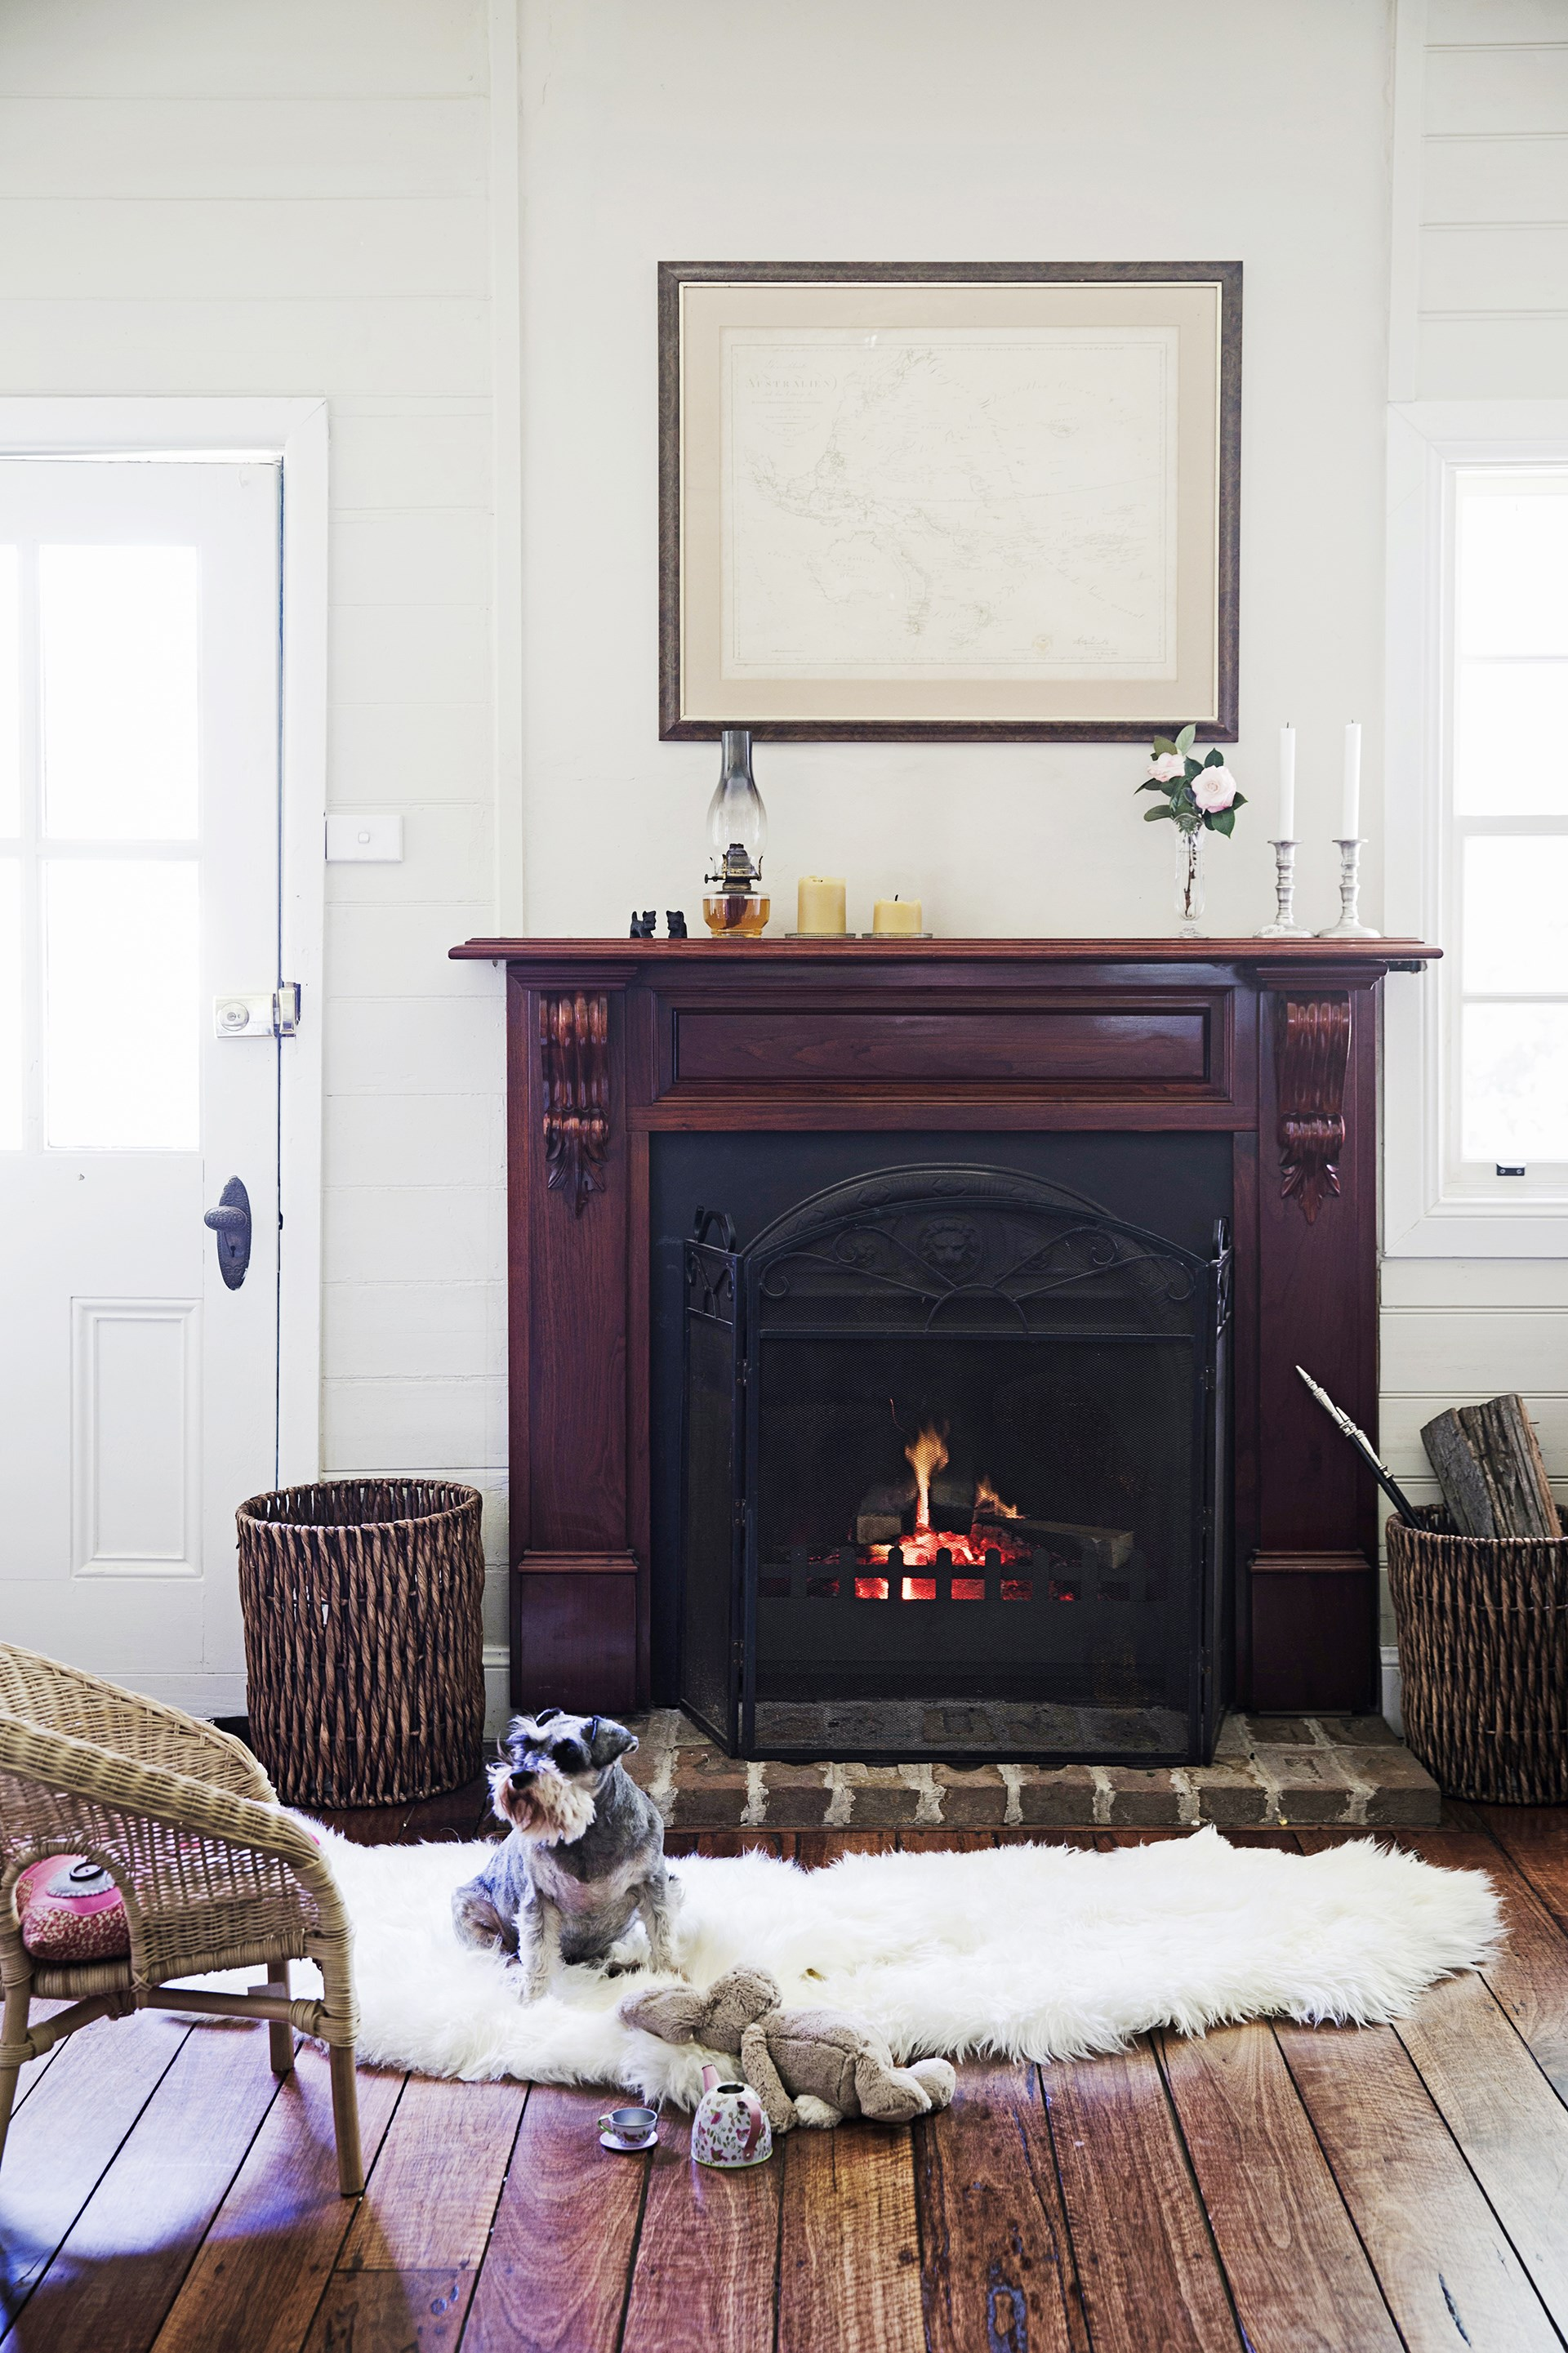 """Restoring this rustic cottage in Cobbity, NSW, was a passion-project for the owners, who took a slow and steady approach to renovating to ensure every nook and cranny received proper care and consideration. Take a tour of this [charming heritage-listed home](http://www.homestolove.com.au/gallery-jodie-and-simons-rustic-cottage-renovation-1520